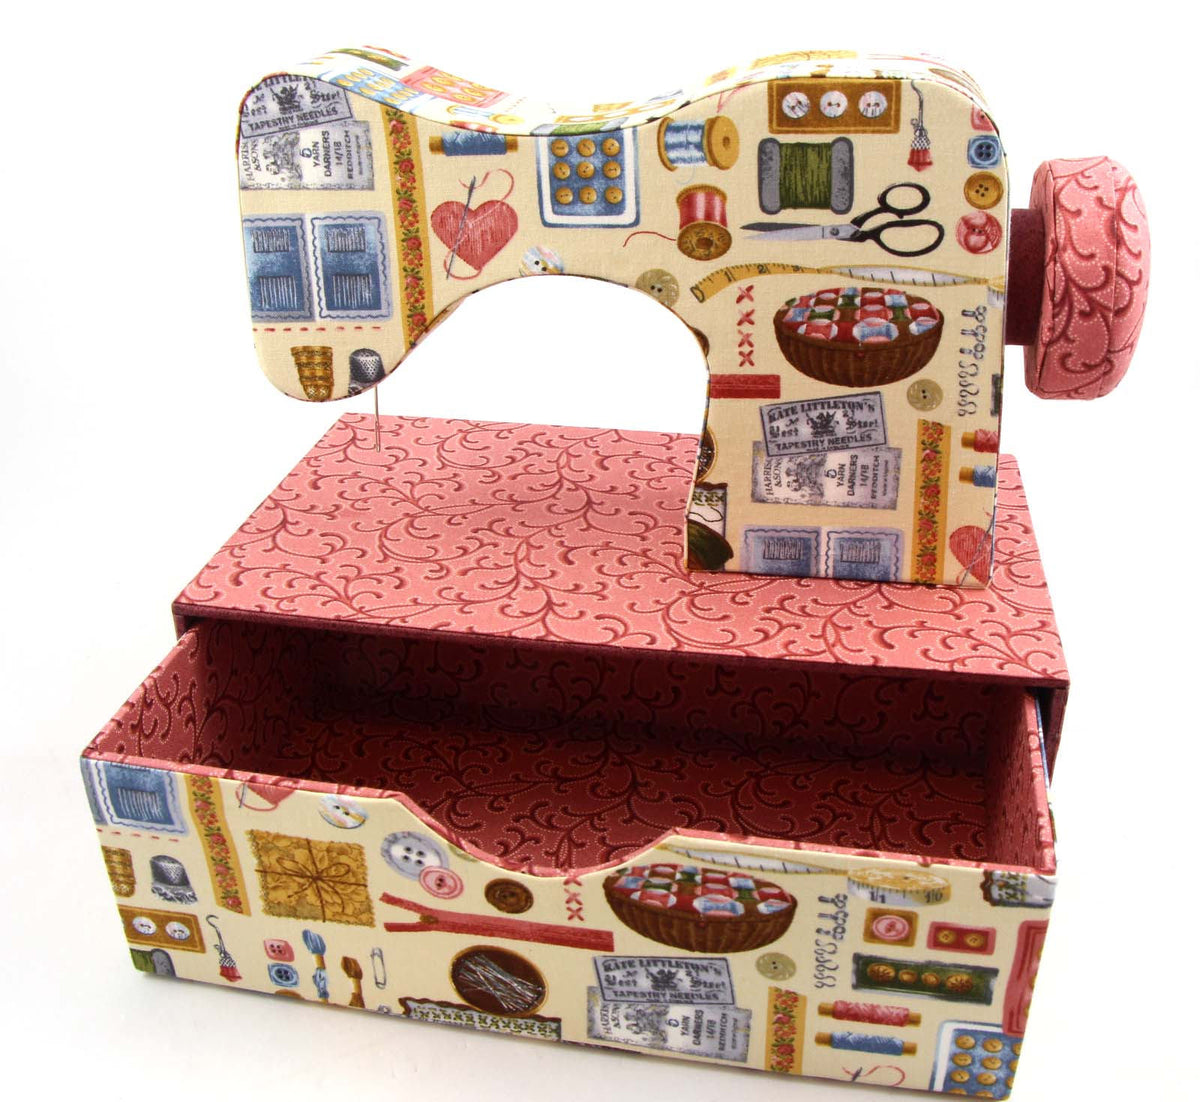 Fabric sewing machine DIY kit, cartonnage kit 150, diy fabric sewing machine with drawer, online instructions included - Colorway Arts